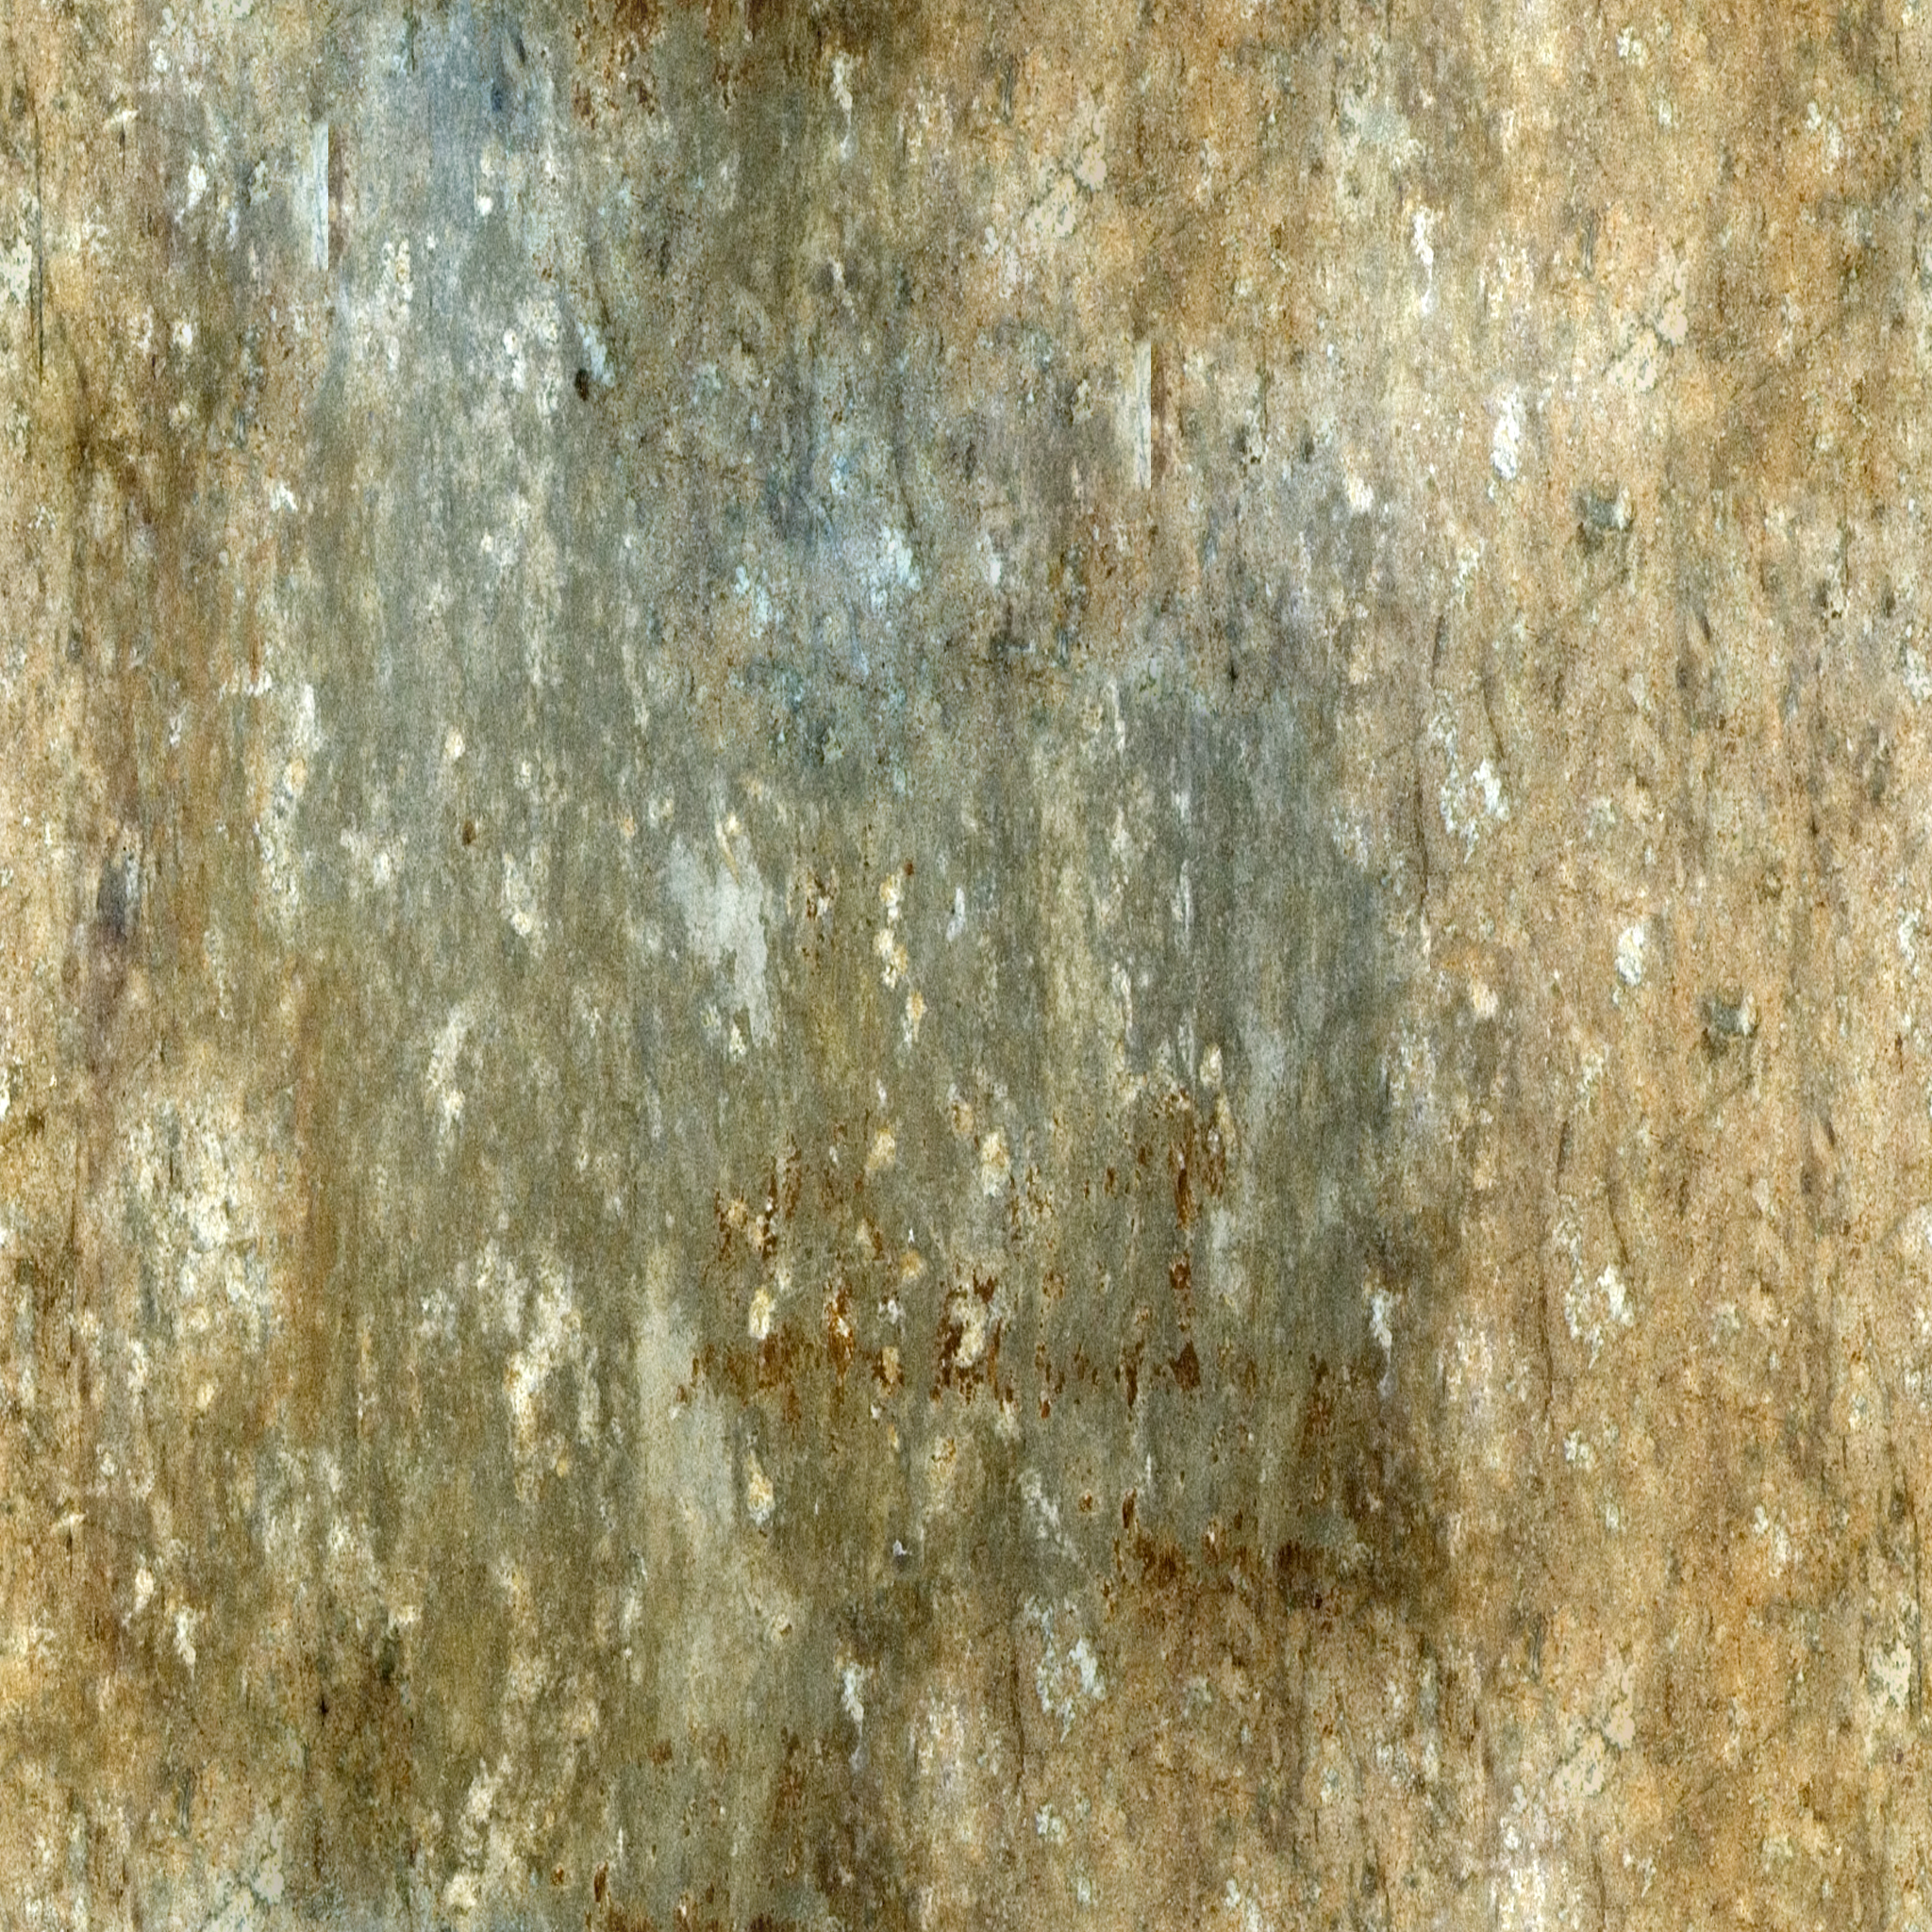 Brown Eroded Metal.jpg